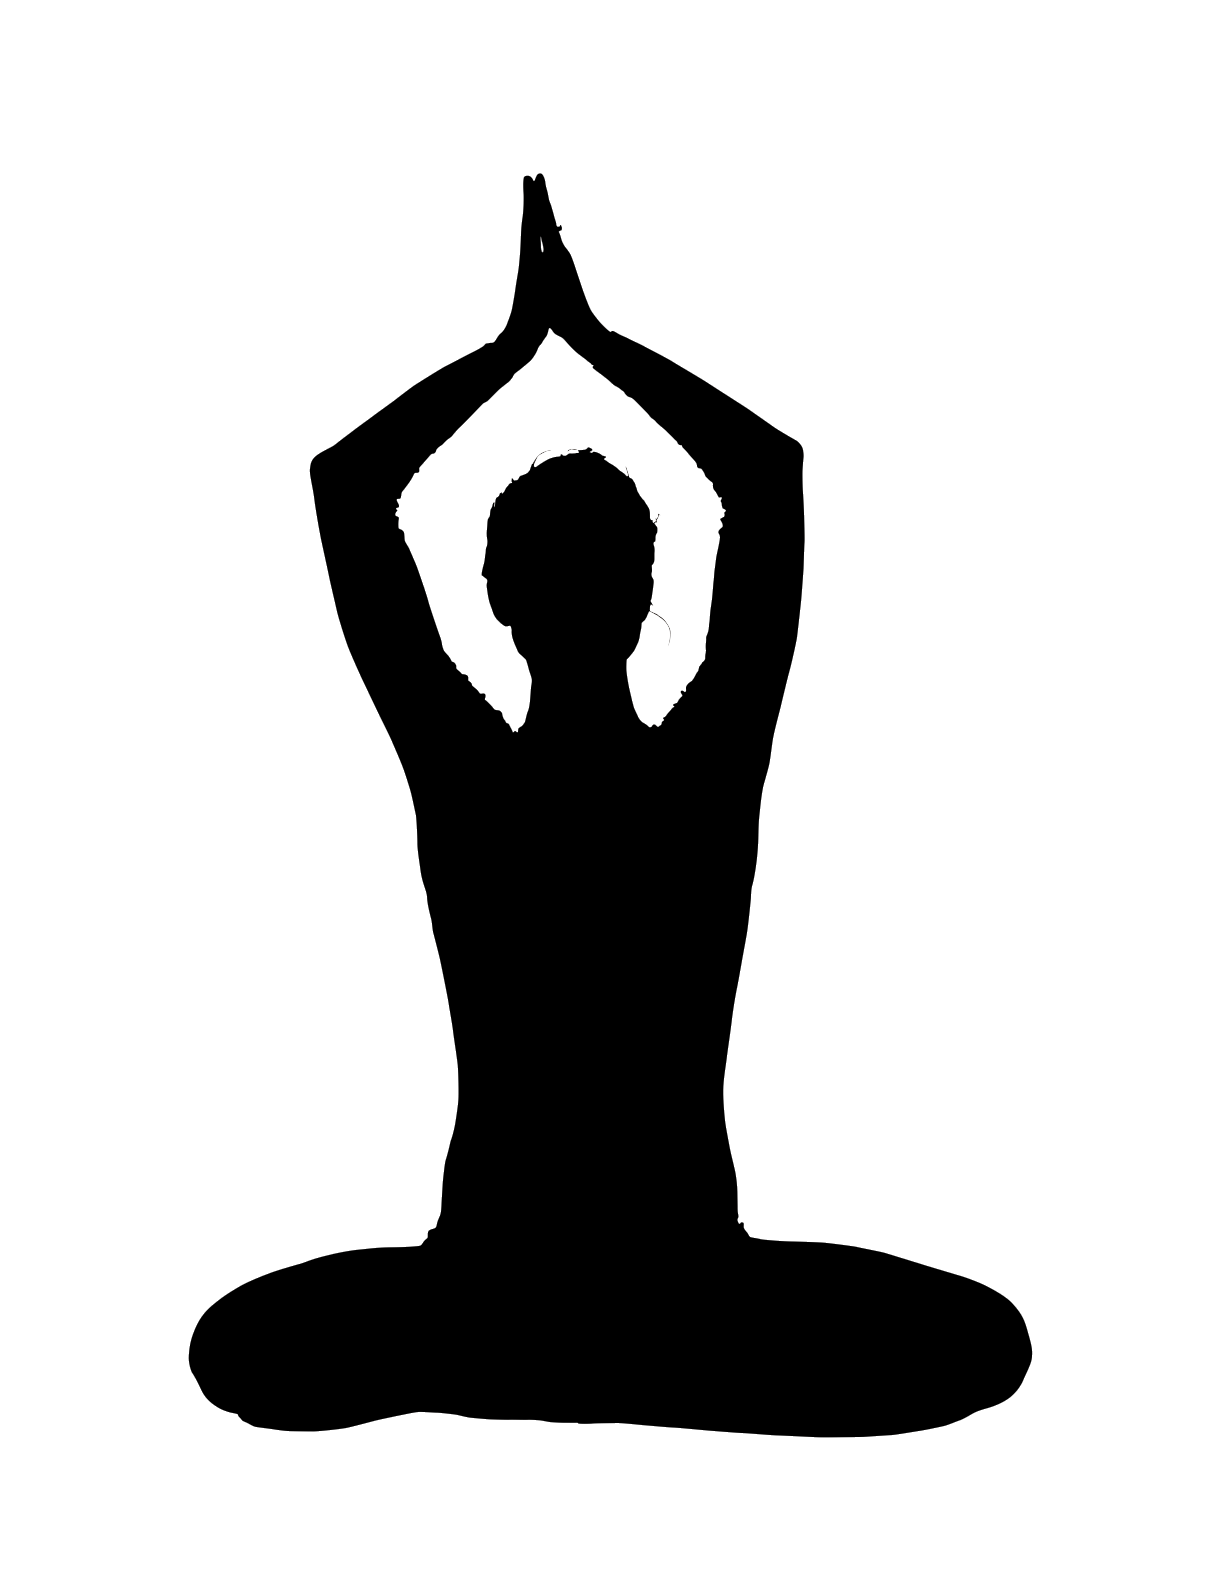 Silhouette_yoga.png